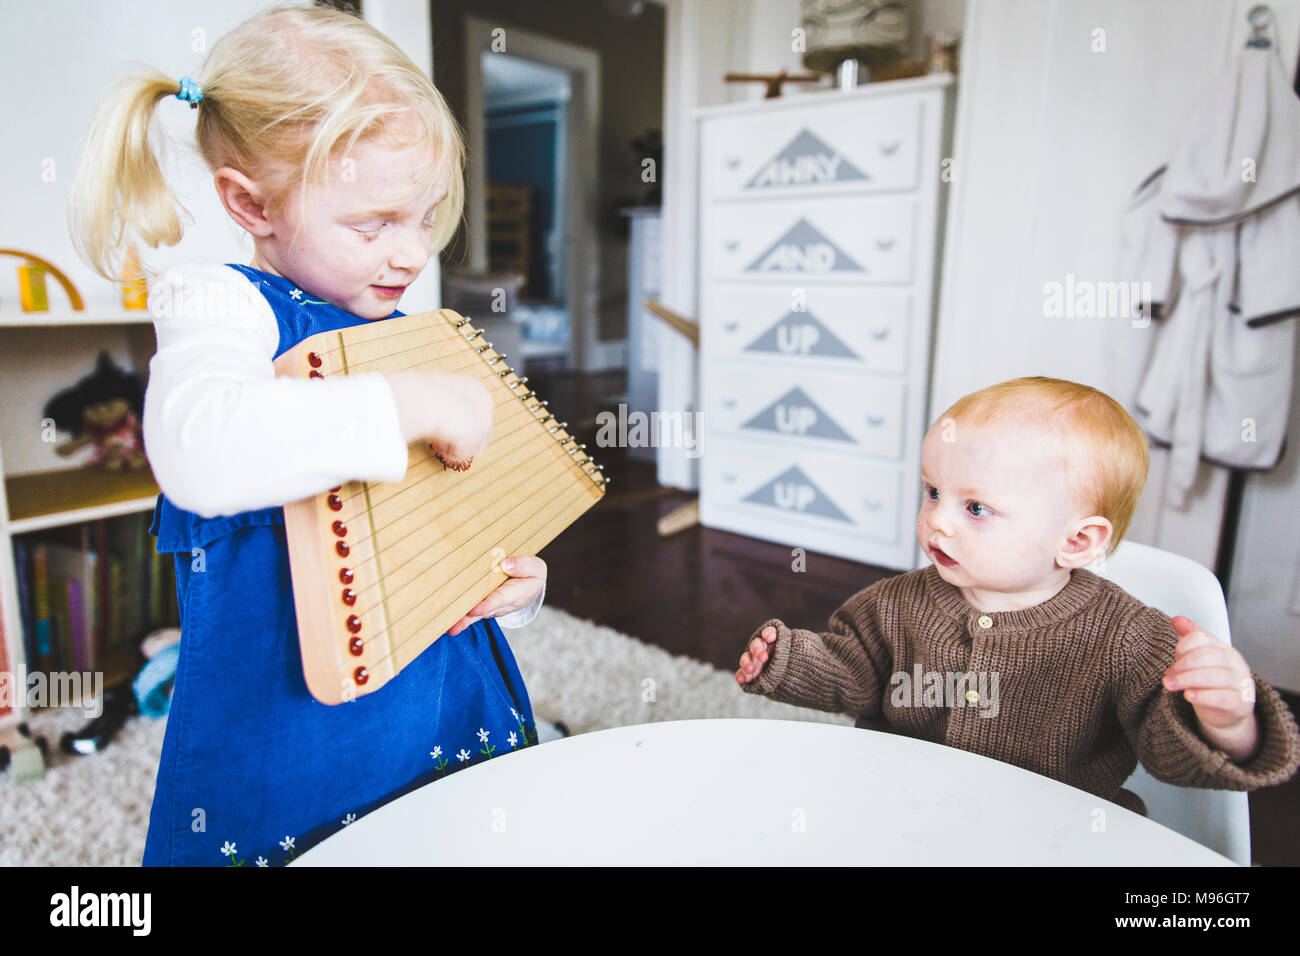 Girl playing harp in front of baby - Stock Image